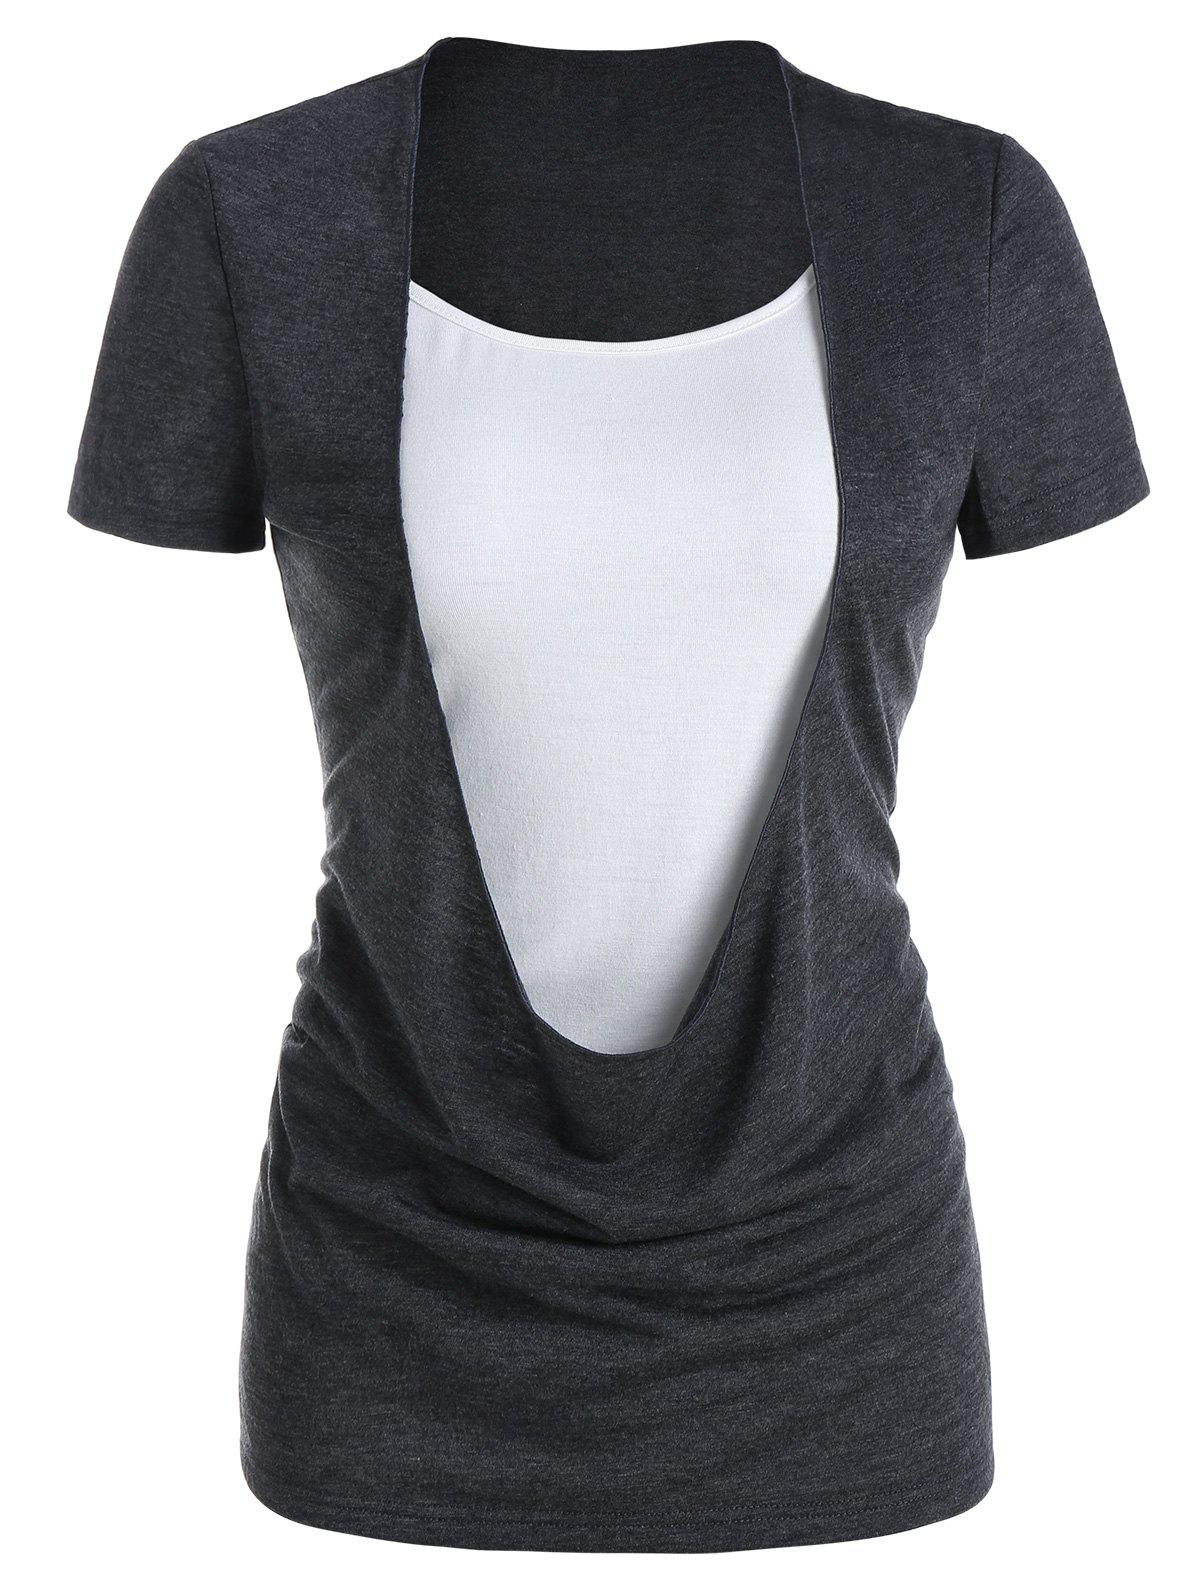 Unique Draped Heathered Faux Twinset T-shirt